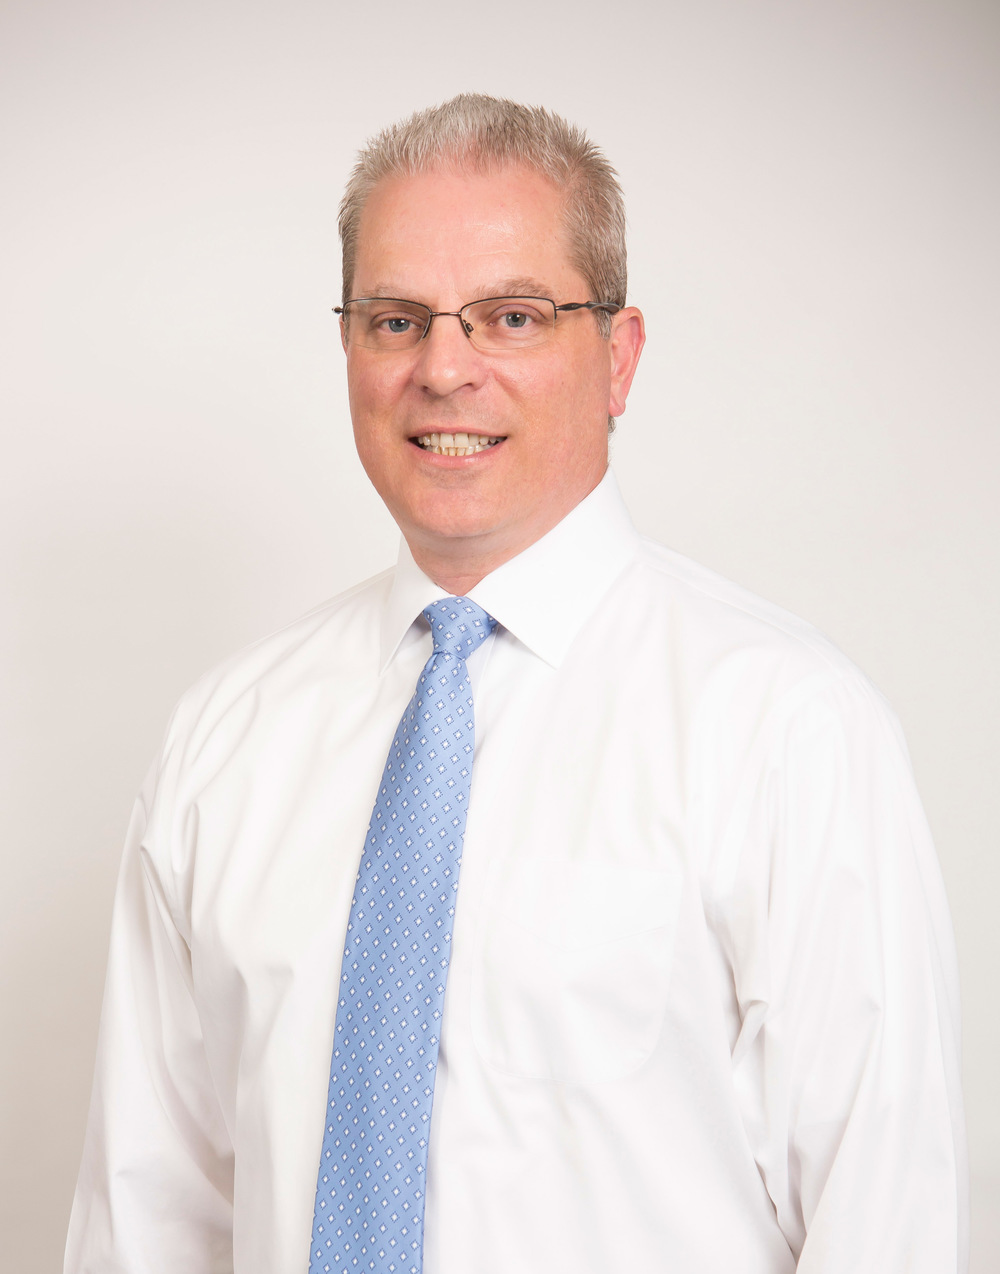 David N. Boughter Jr. Director of Sales and Marketing dboughter@sipartners.net